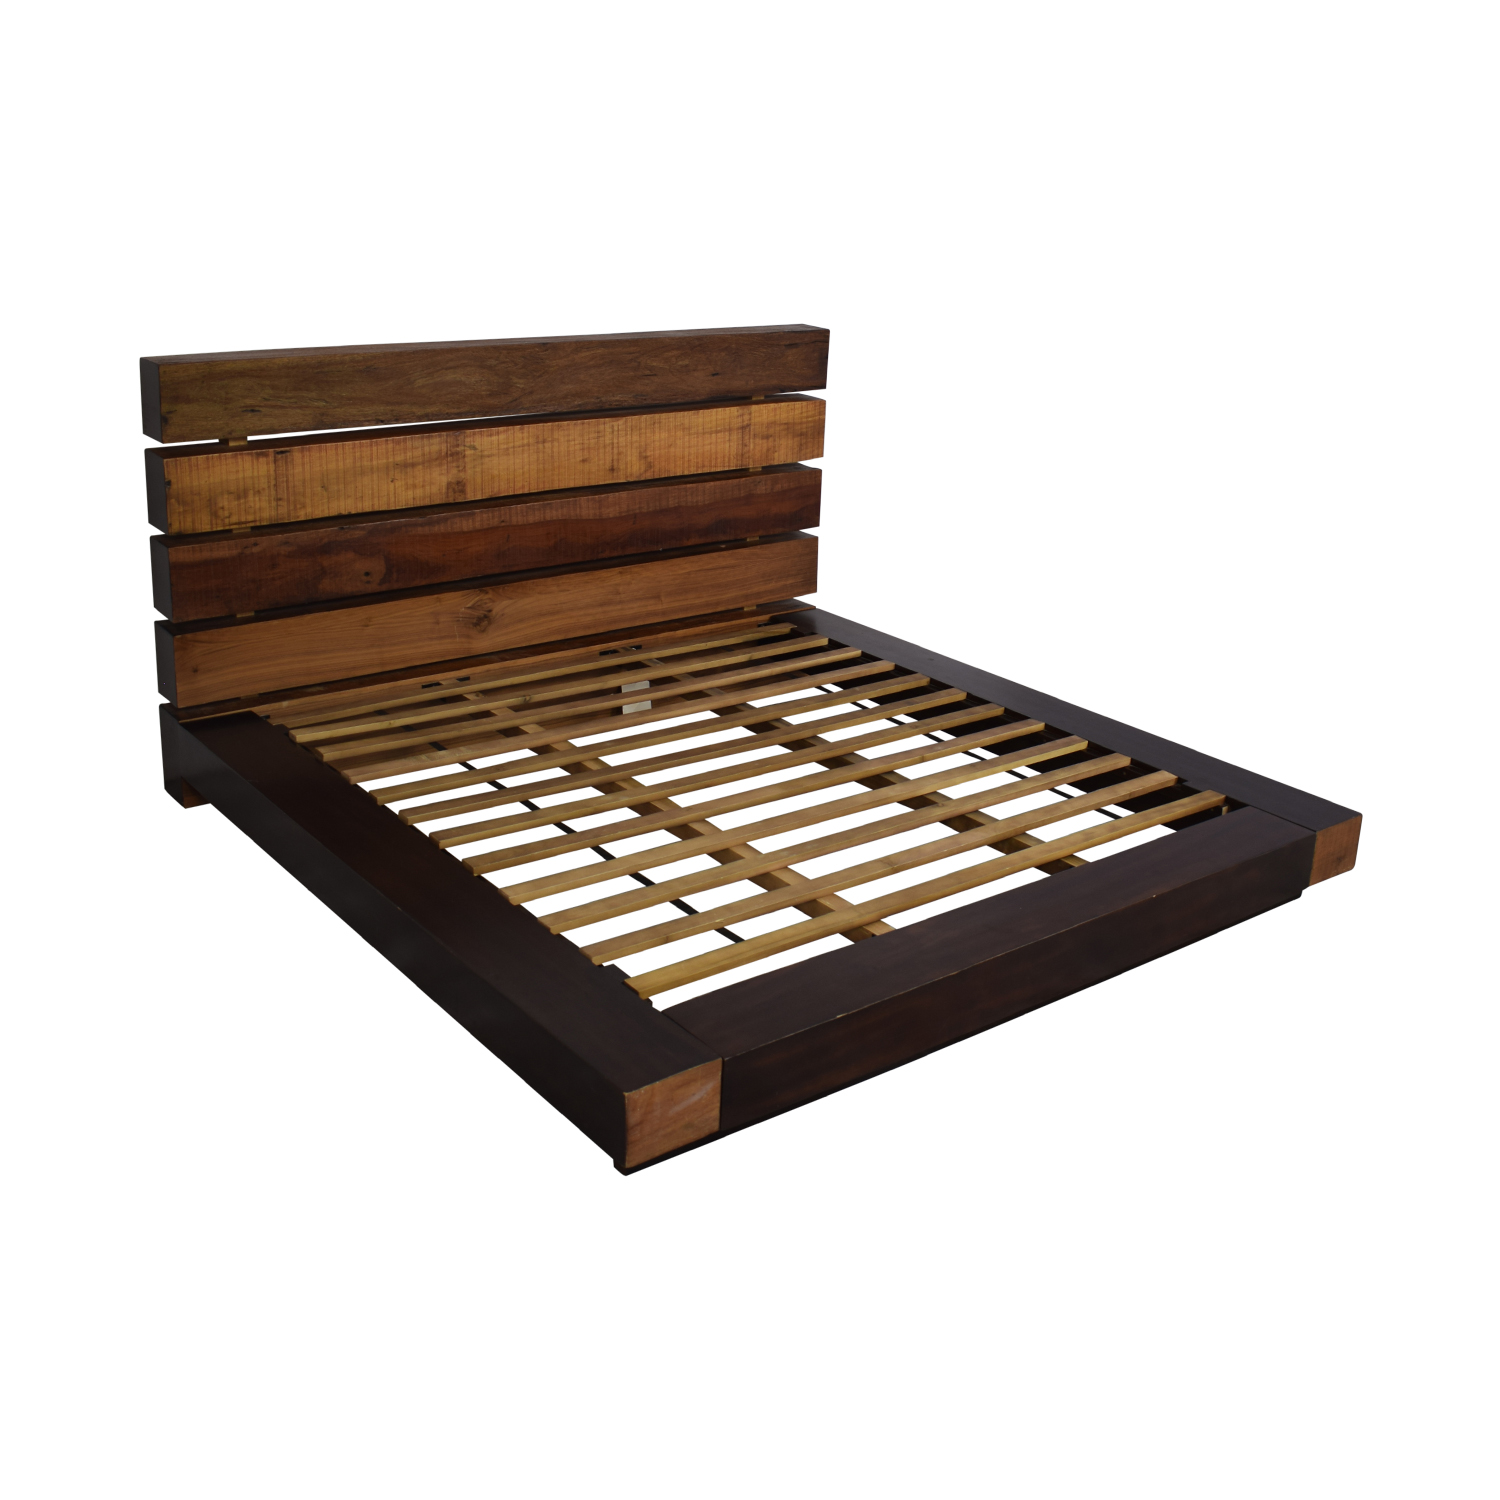 ABC Carpet & Home ABC Carpet &  Home King Size Edge Rustic Slat Bed Bed Frames